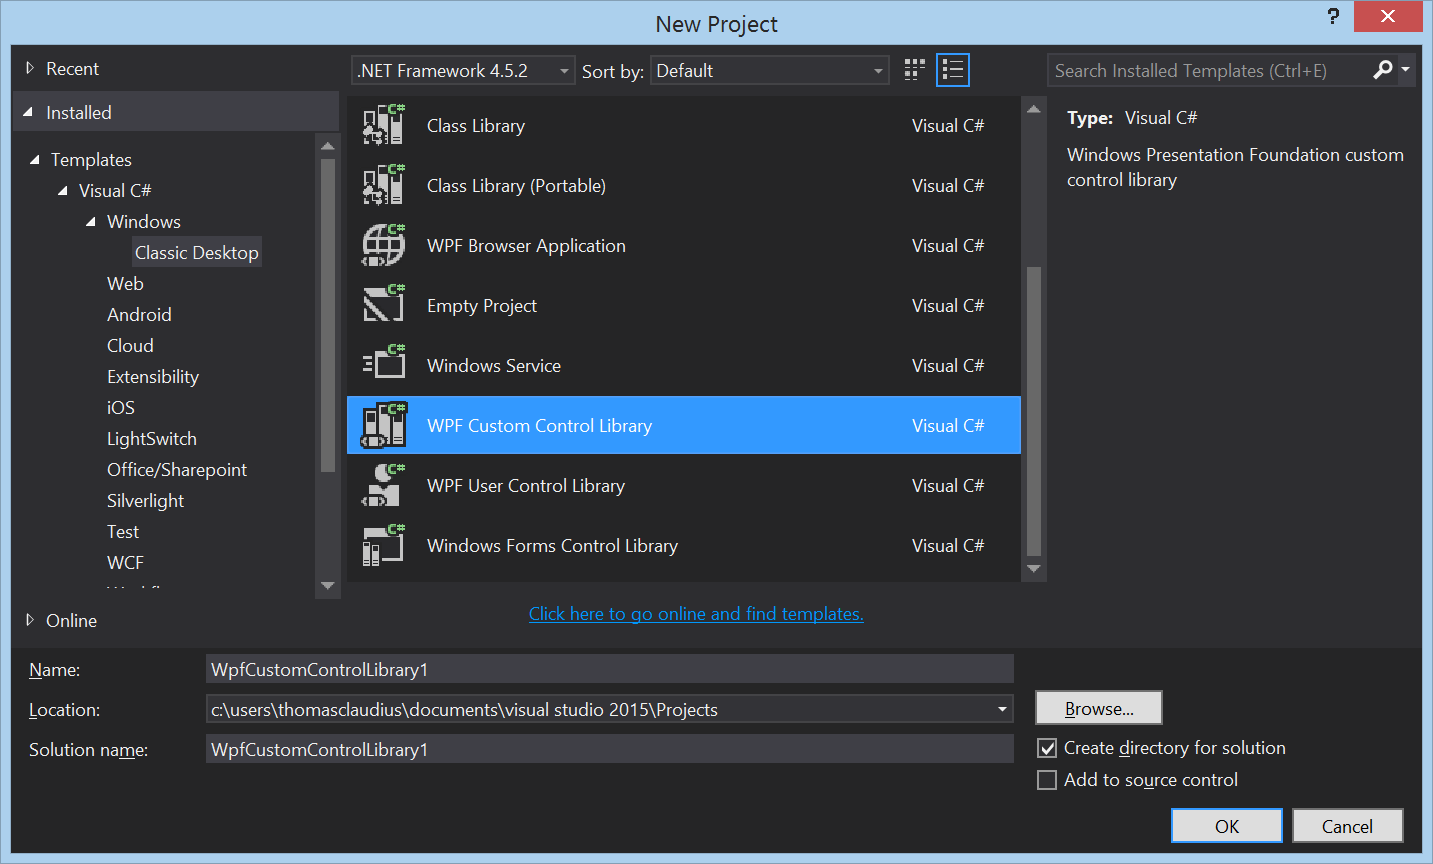 How to create a WPF custom control library